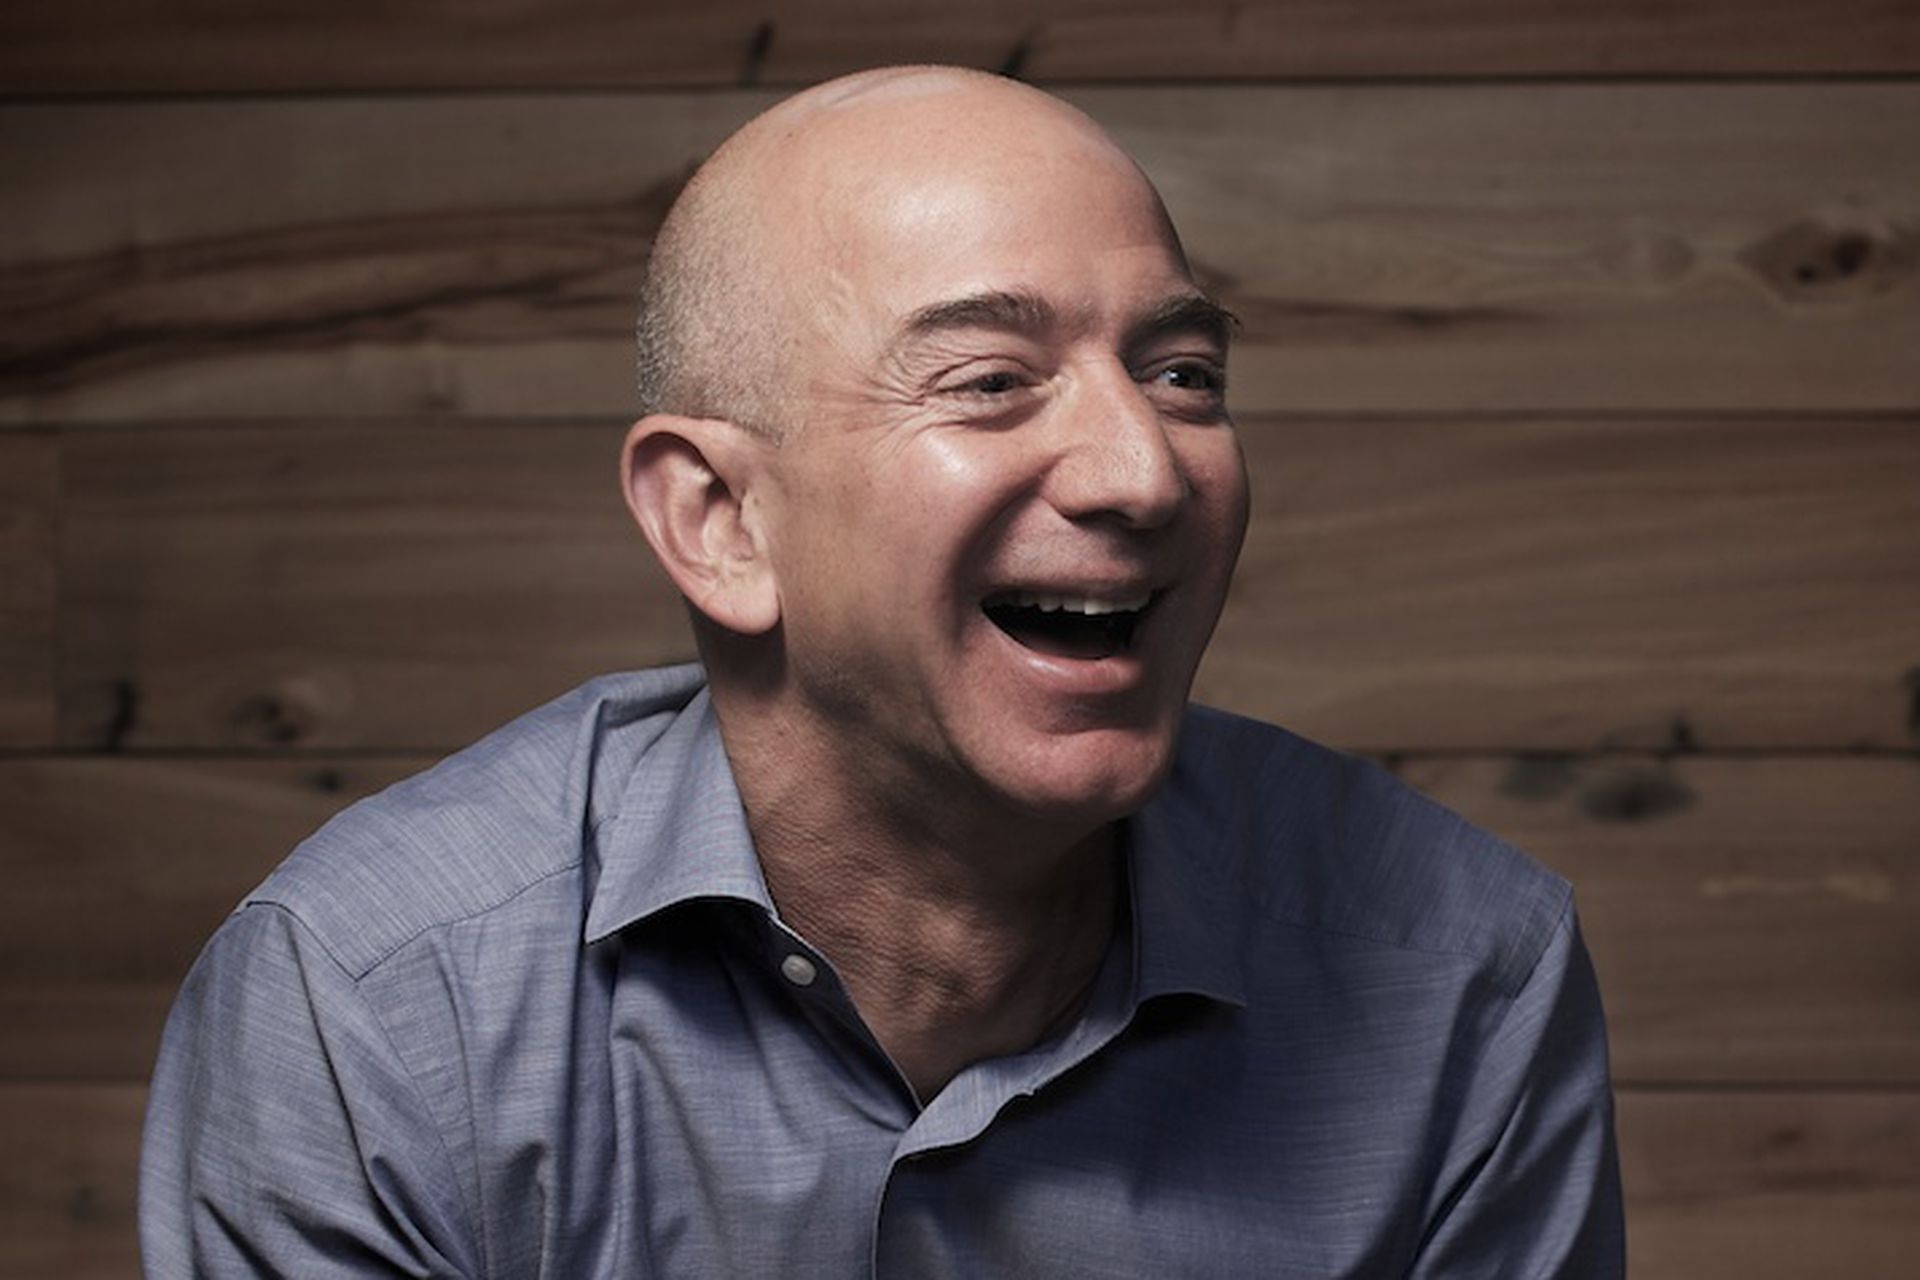 Jeff Bezos wants to delight you | The Verge